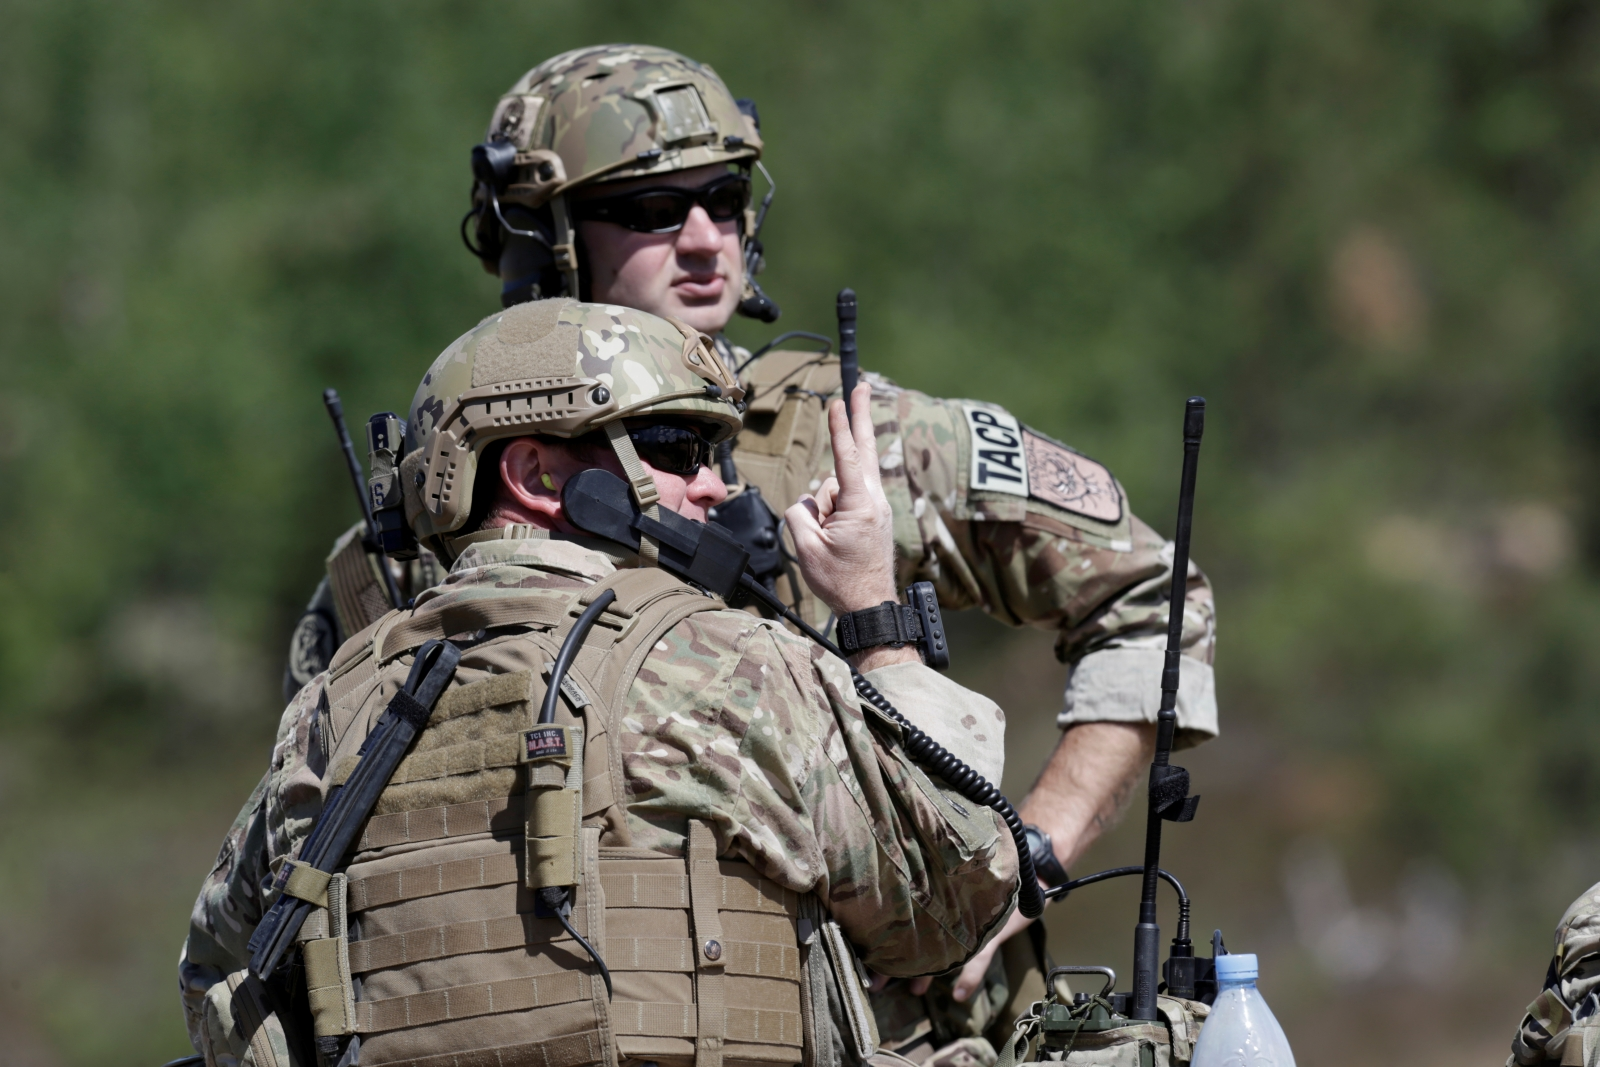 US Army special forces to use iPhone6S